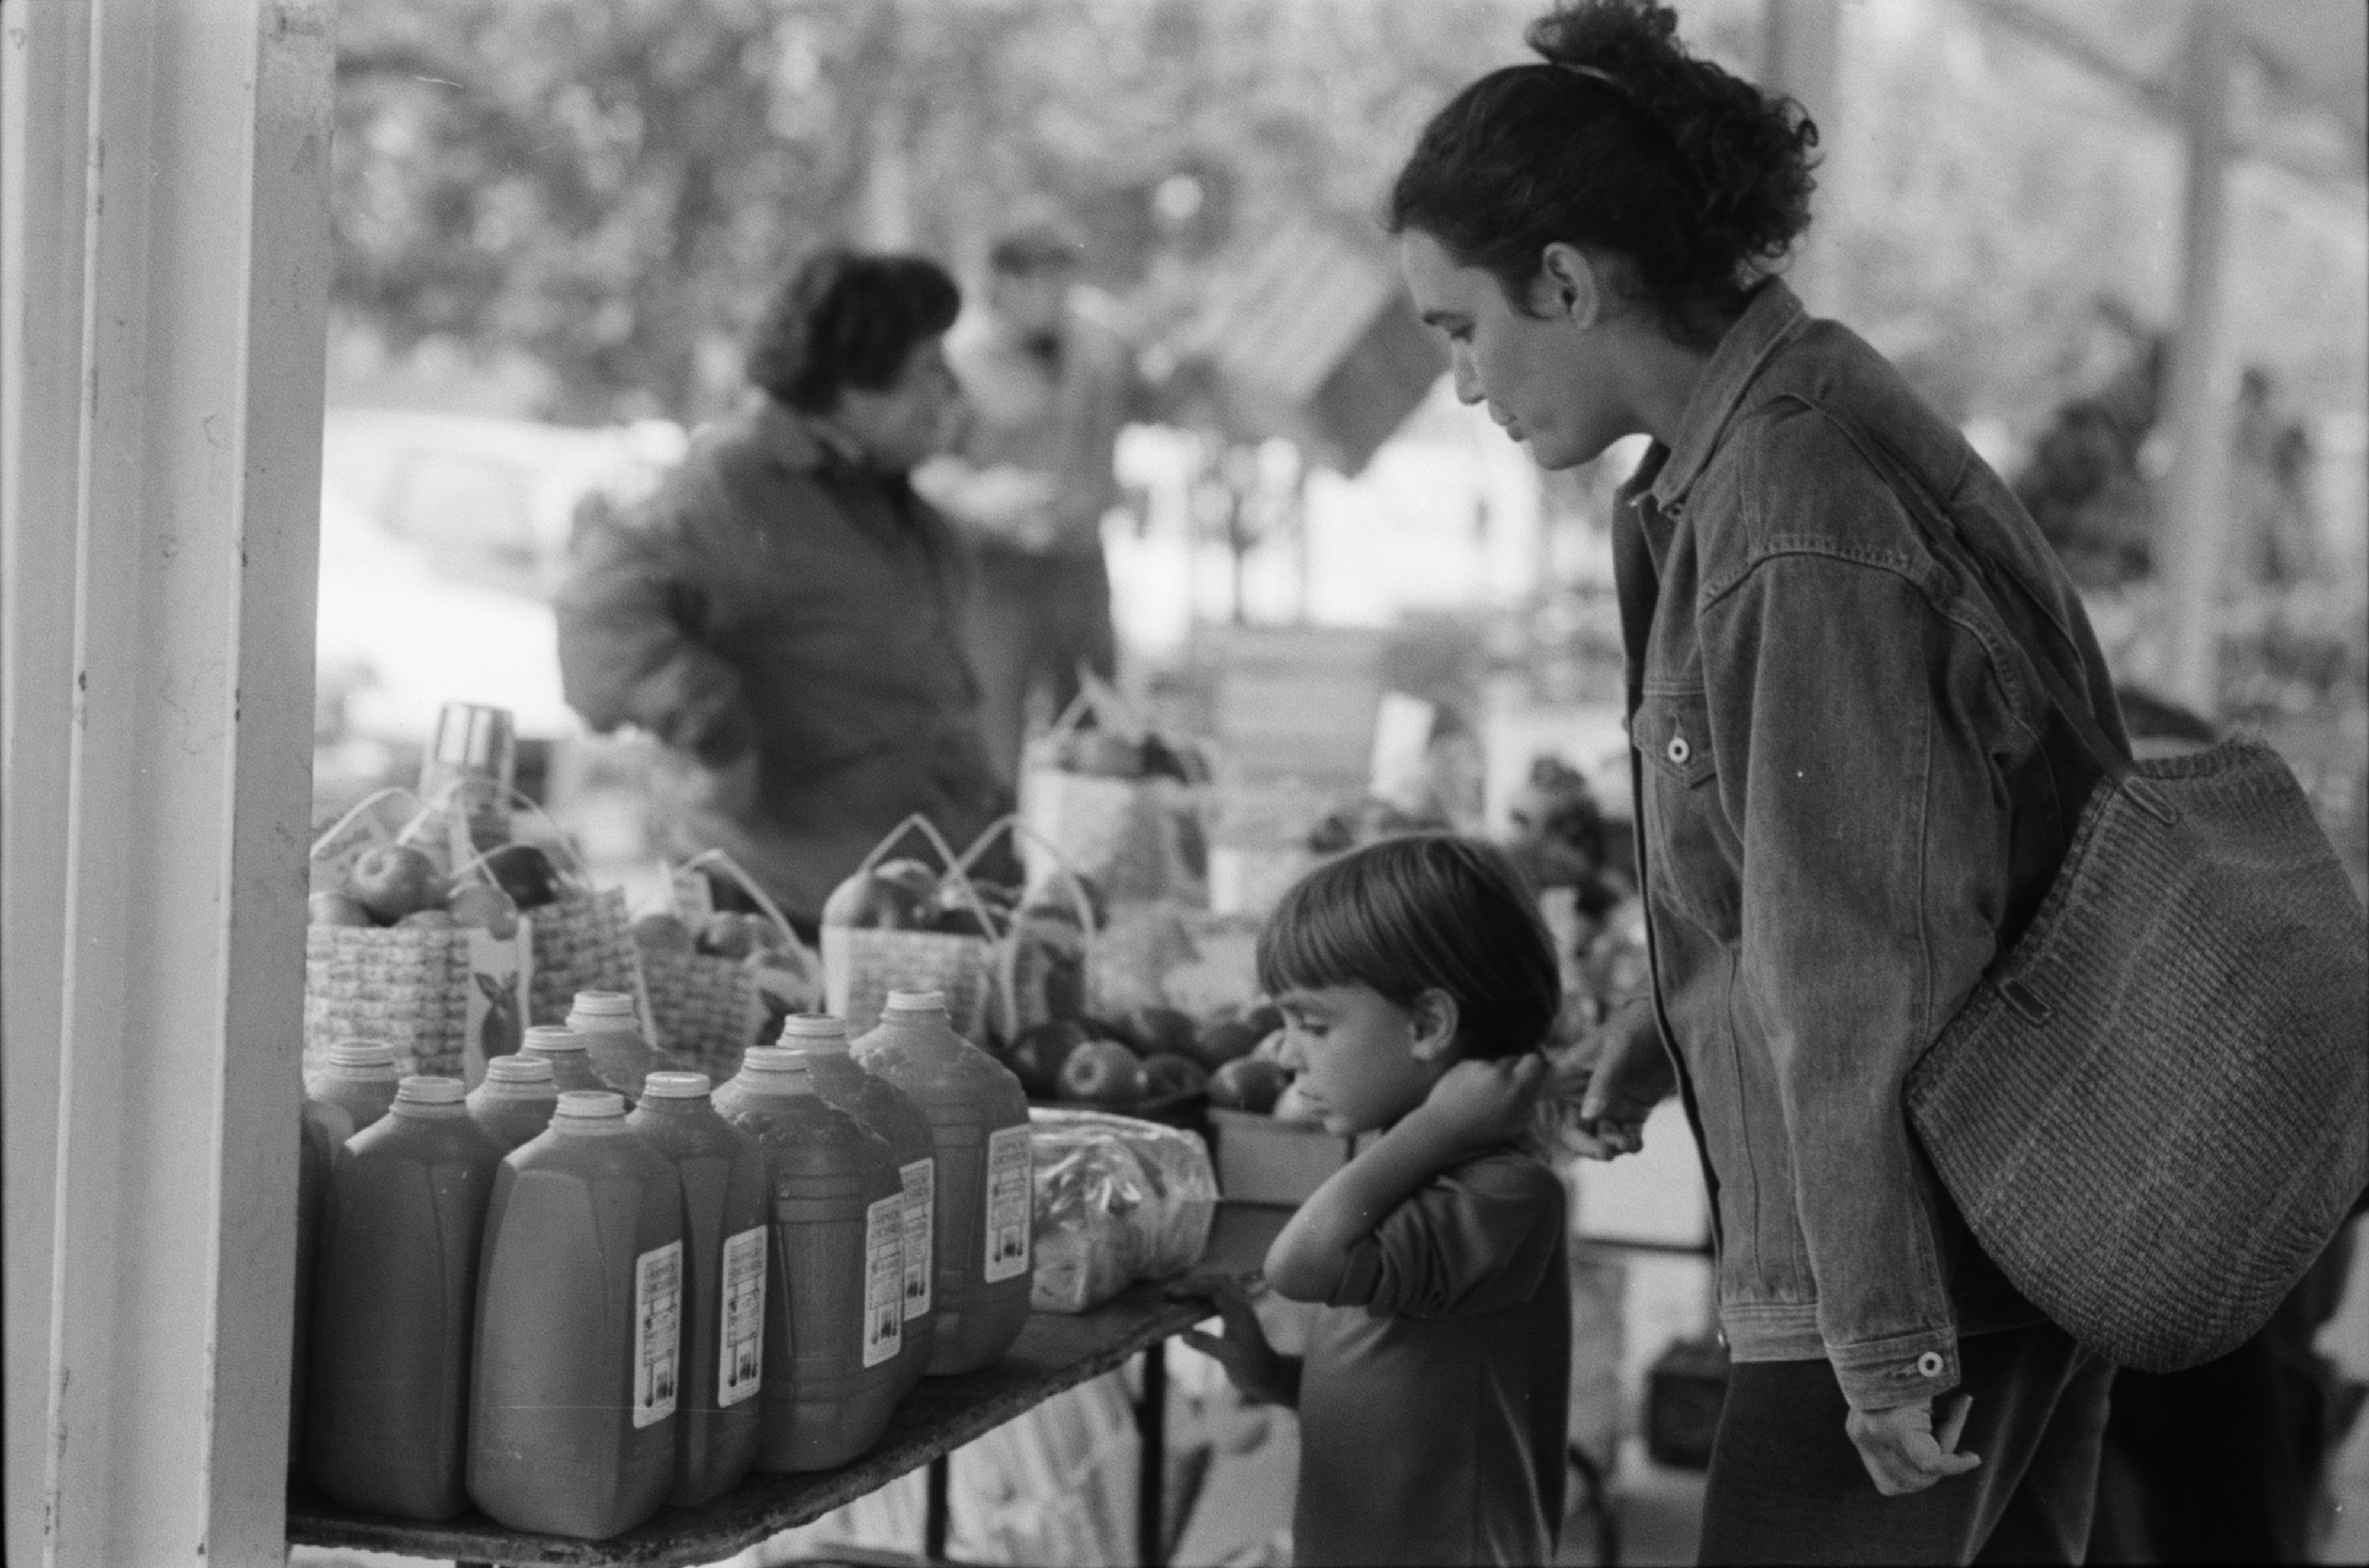 Fall At The Ann Arbor Farmers Market, October 1988 image